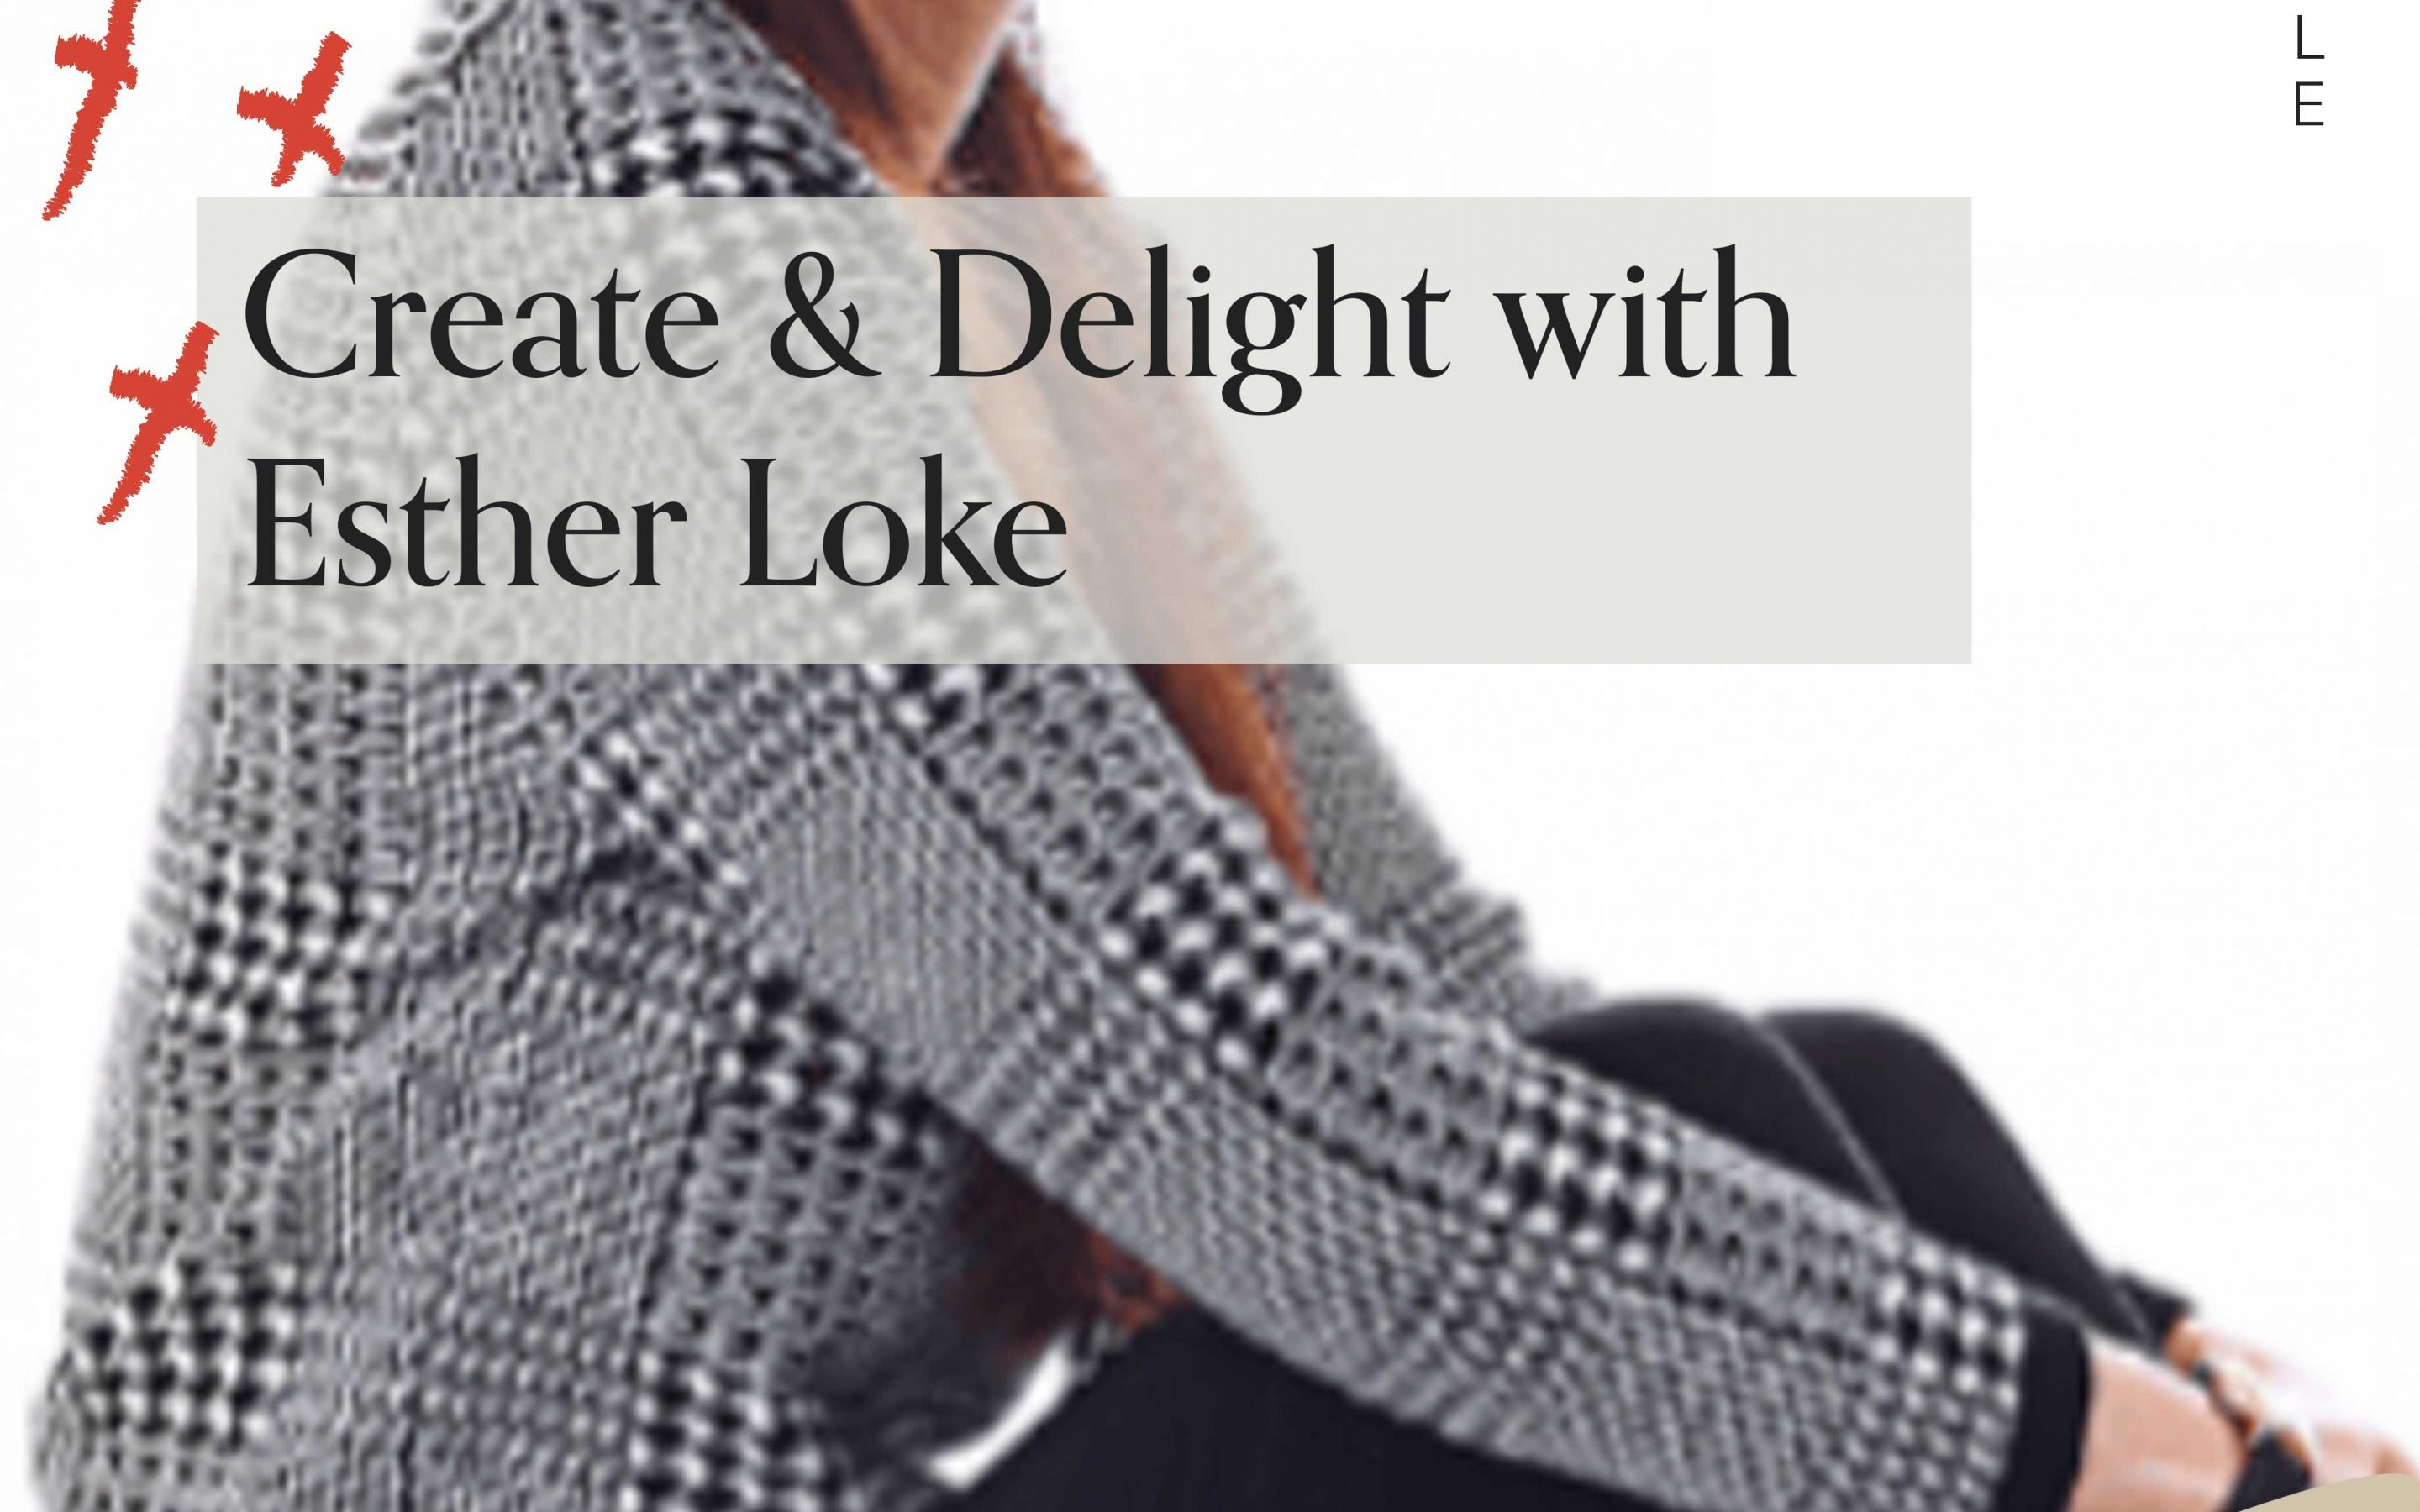 Create & delight with Esther Loke